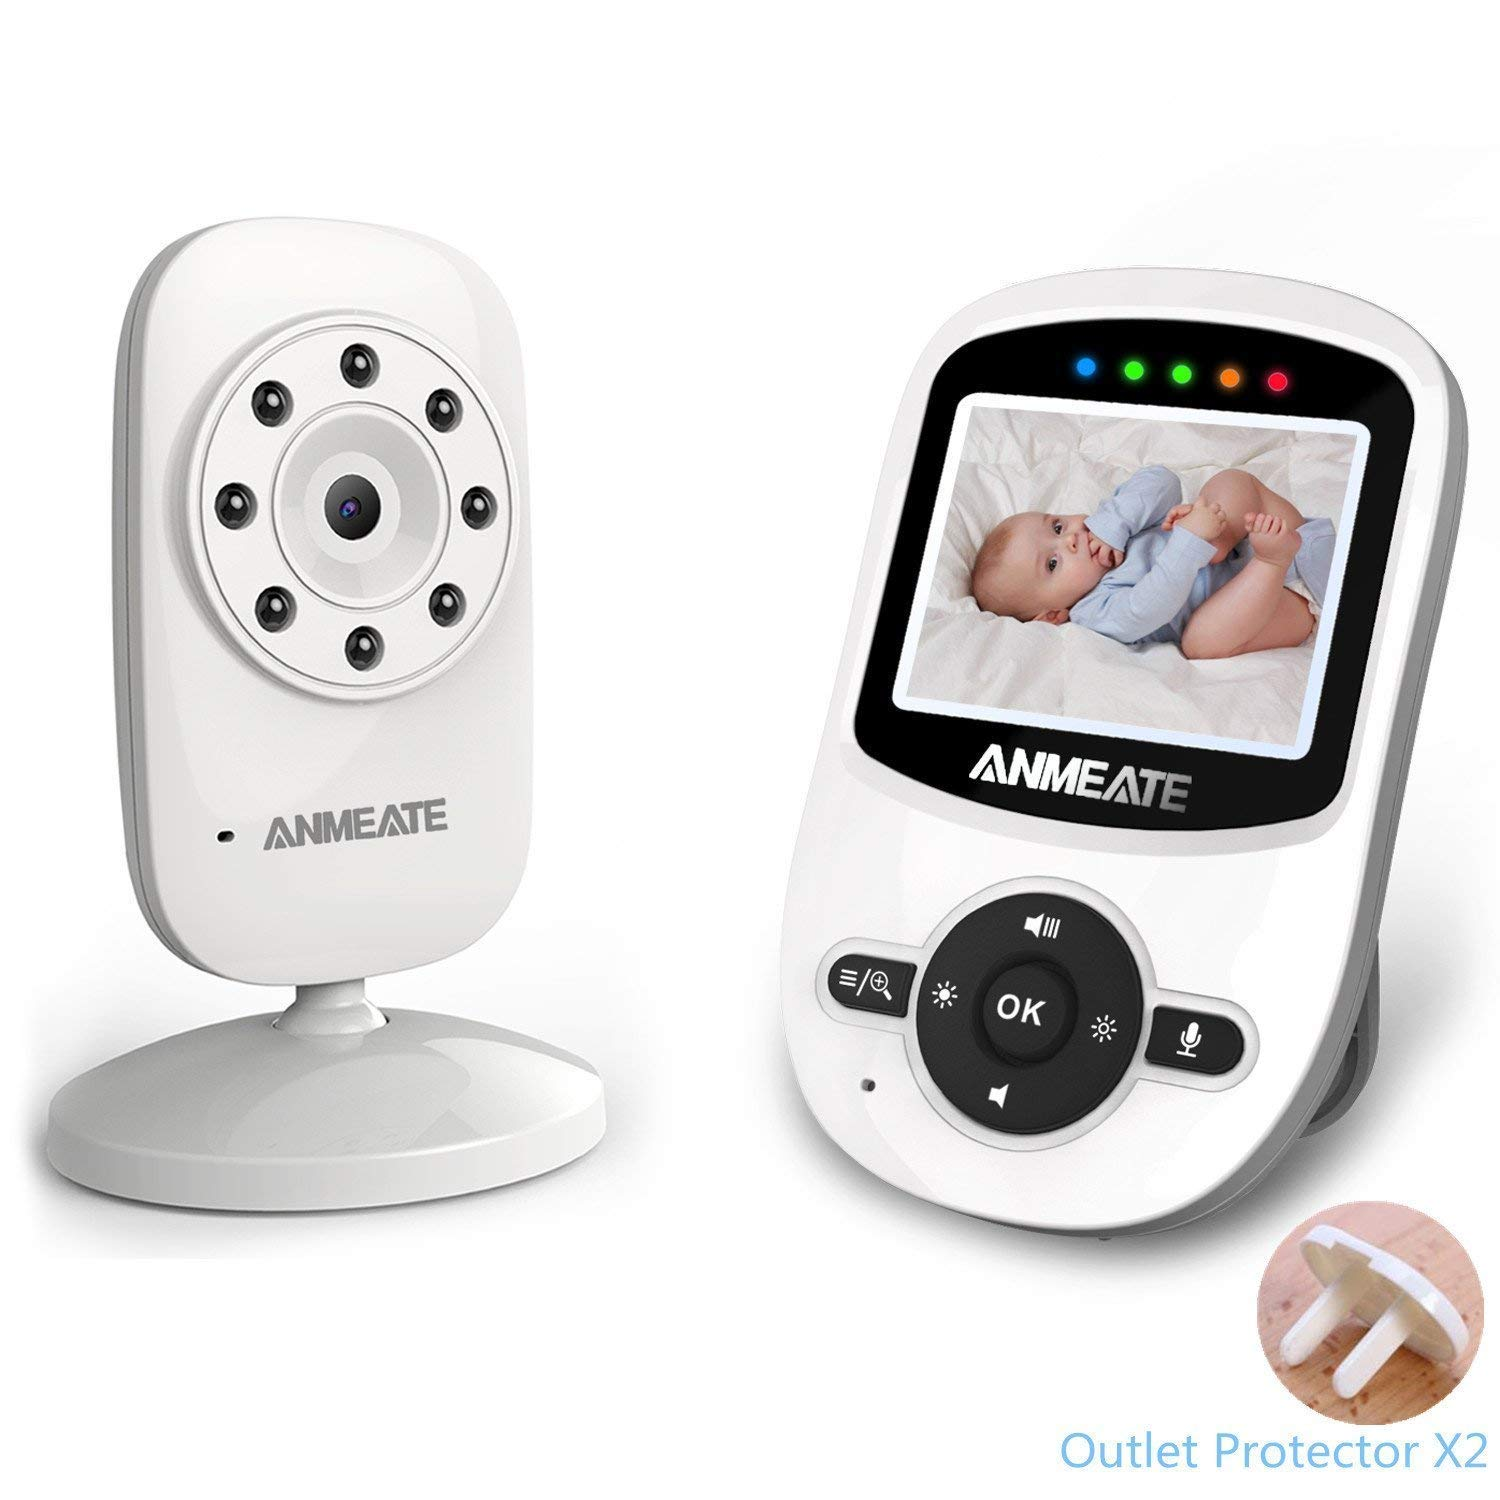 Video Baby Monitor with Camera and Infrared Night Vision, Two-Way Talkback, and Temperature Monitor - Long Range, Monitor Your Baby All Round The Clock,Include 2 Piece Outlet Protector ANMEATE SM2408